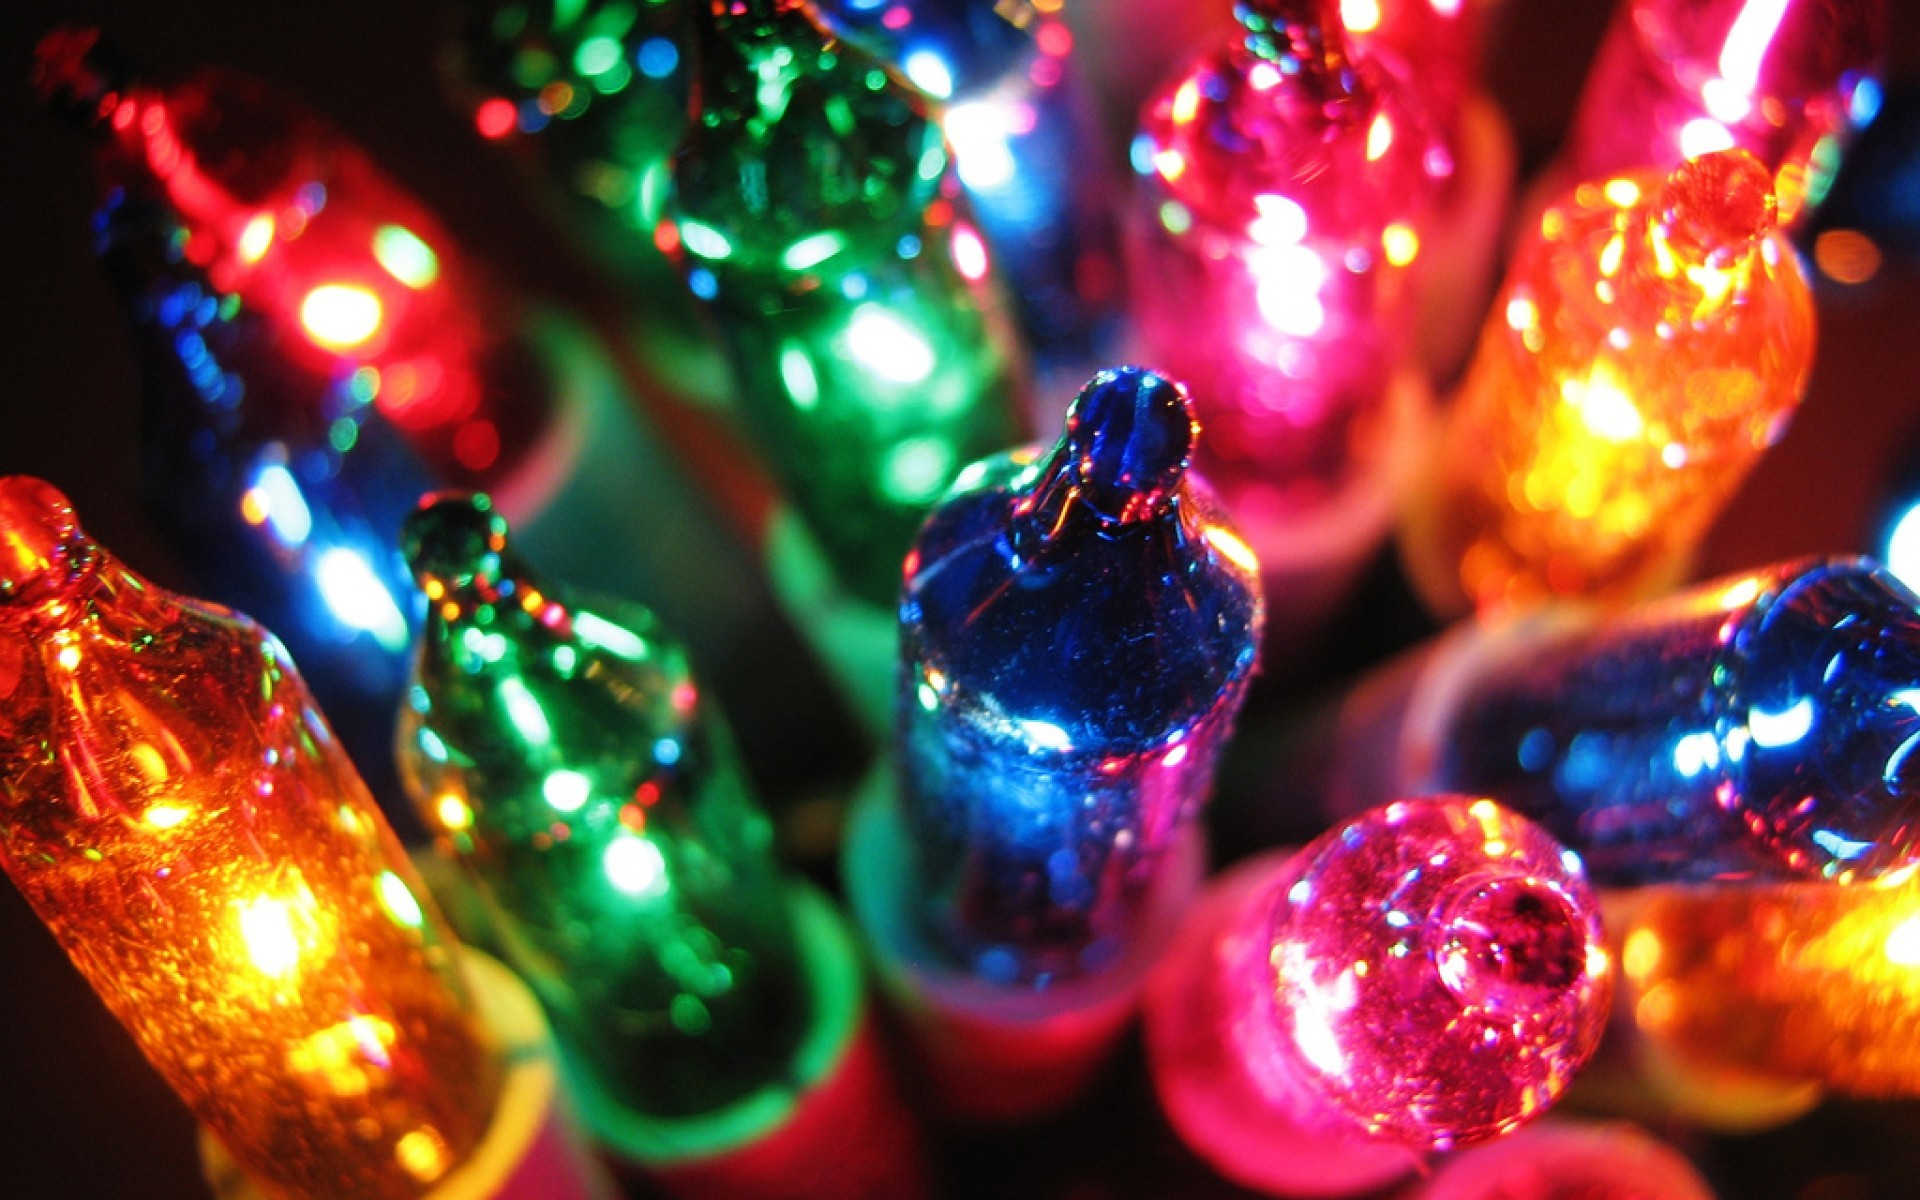 25 Colorful Hd Wallpapers To Light Up Your Display: It's The Most Wonderful Time Of The Year (nearly